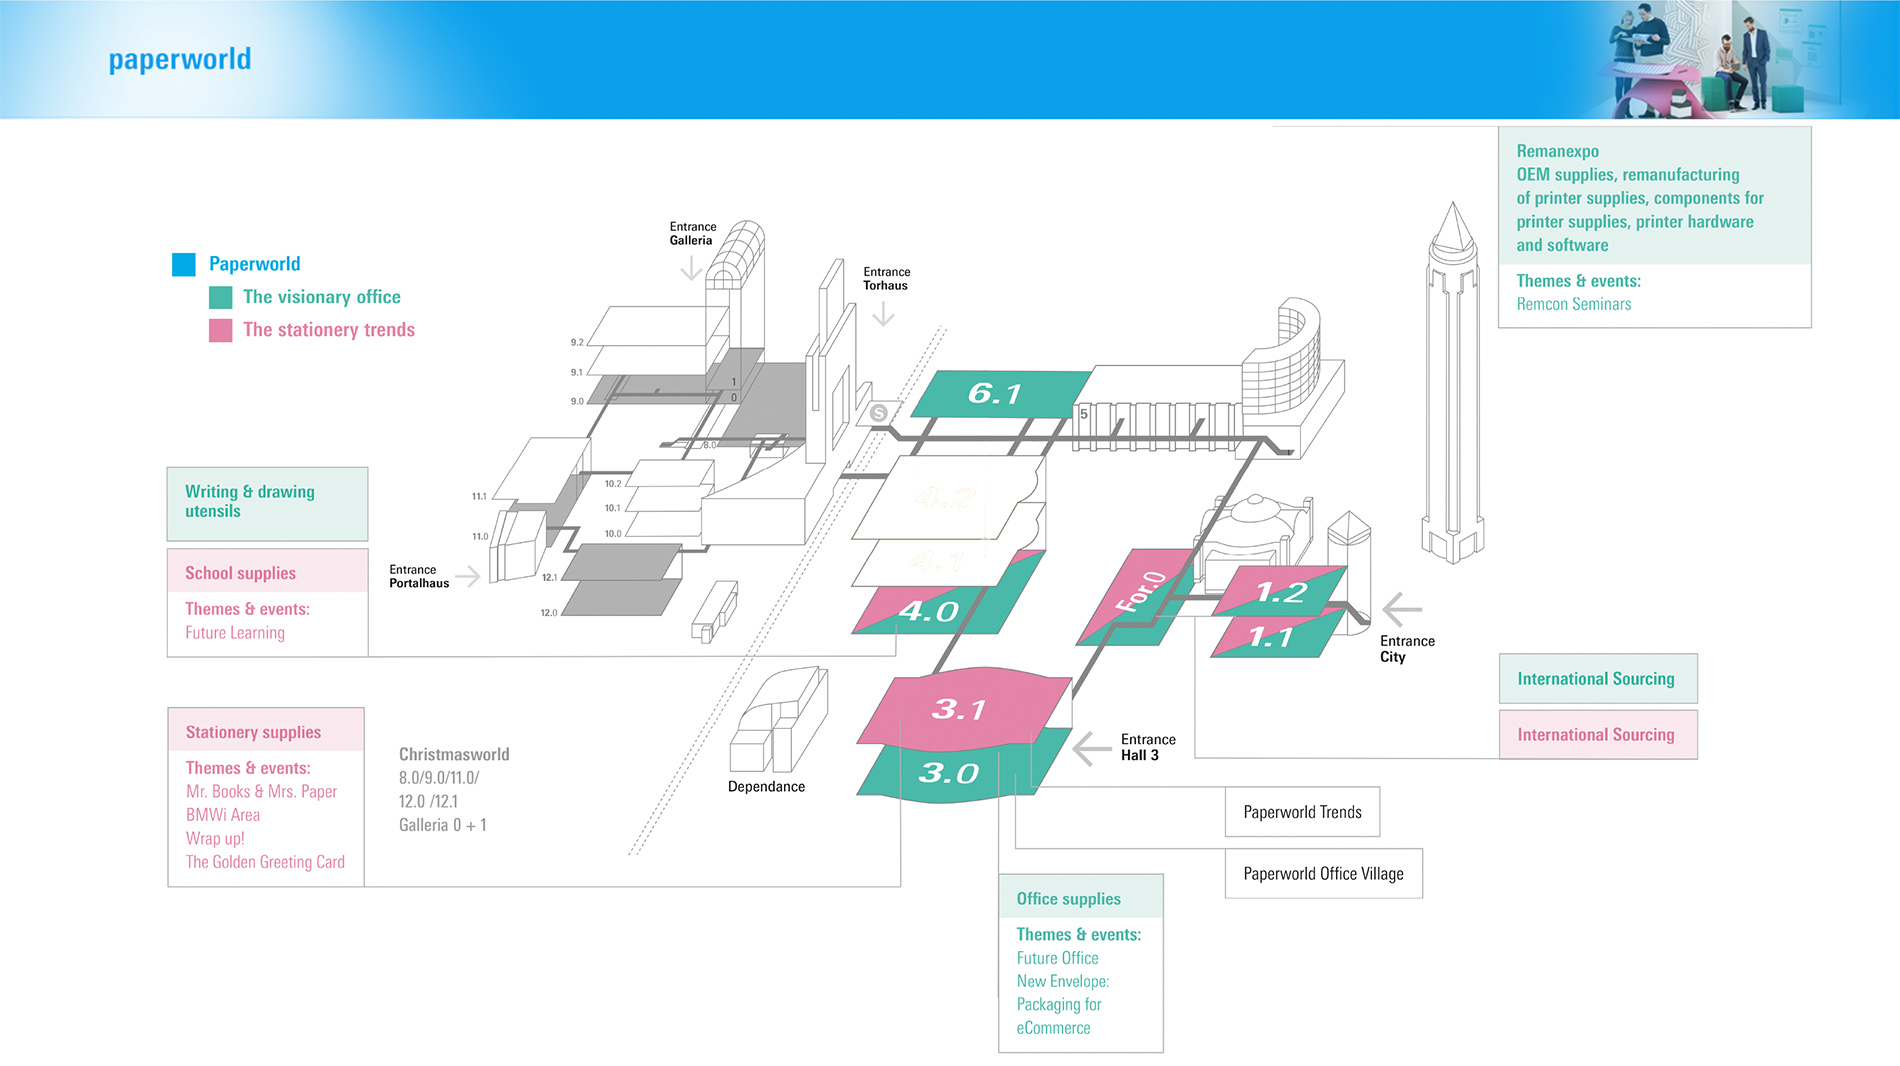 Exhibition hall plan for Paperworld 2020